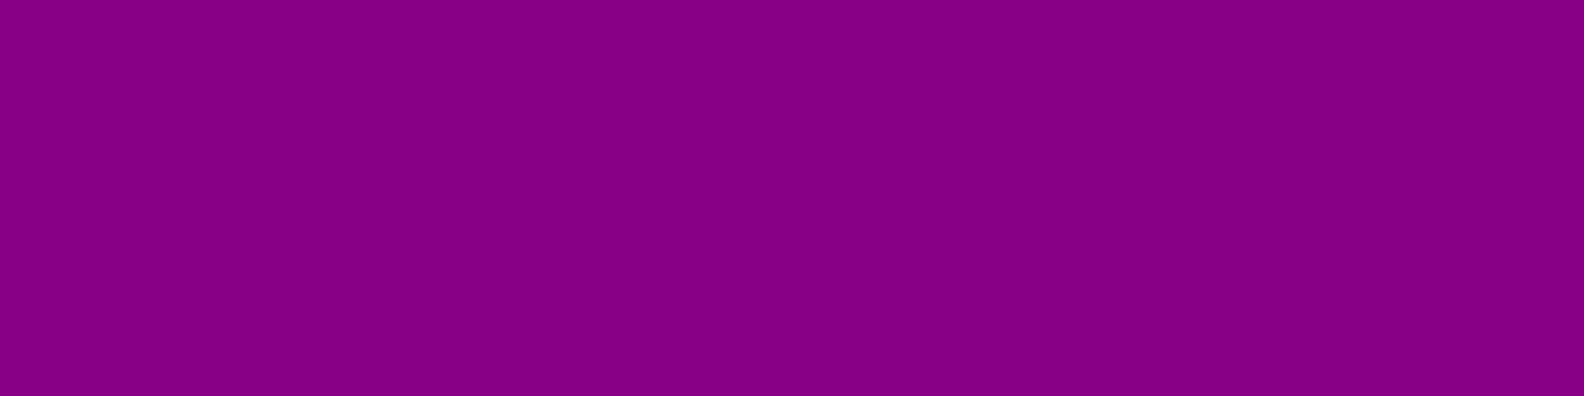 1584x396 Mardi Gras Solid Color Background